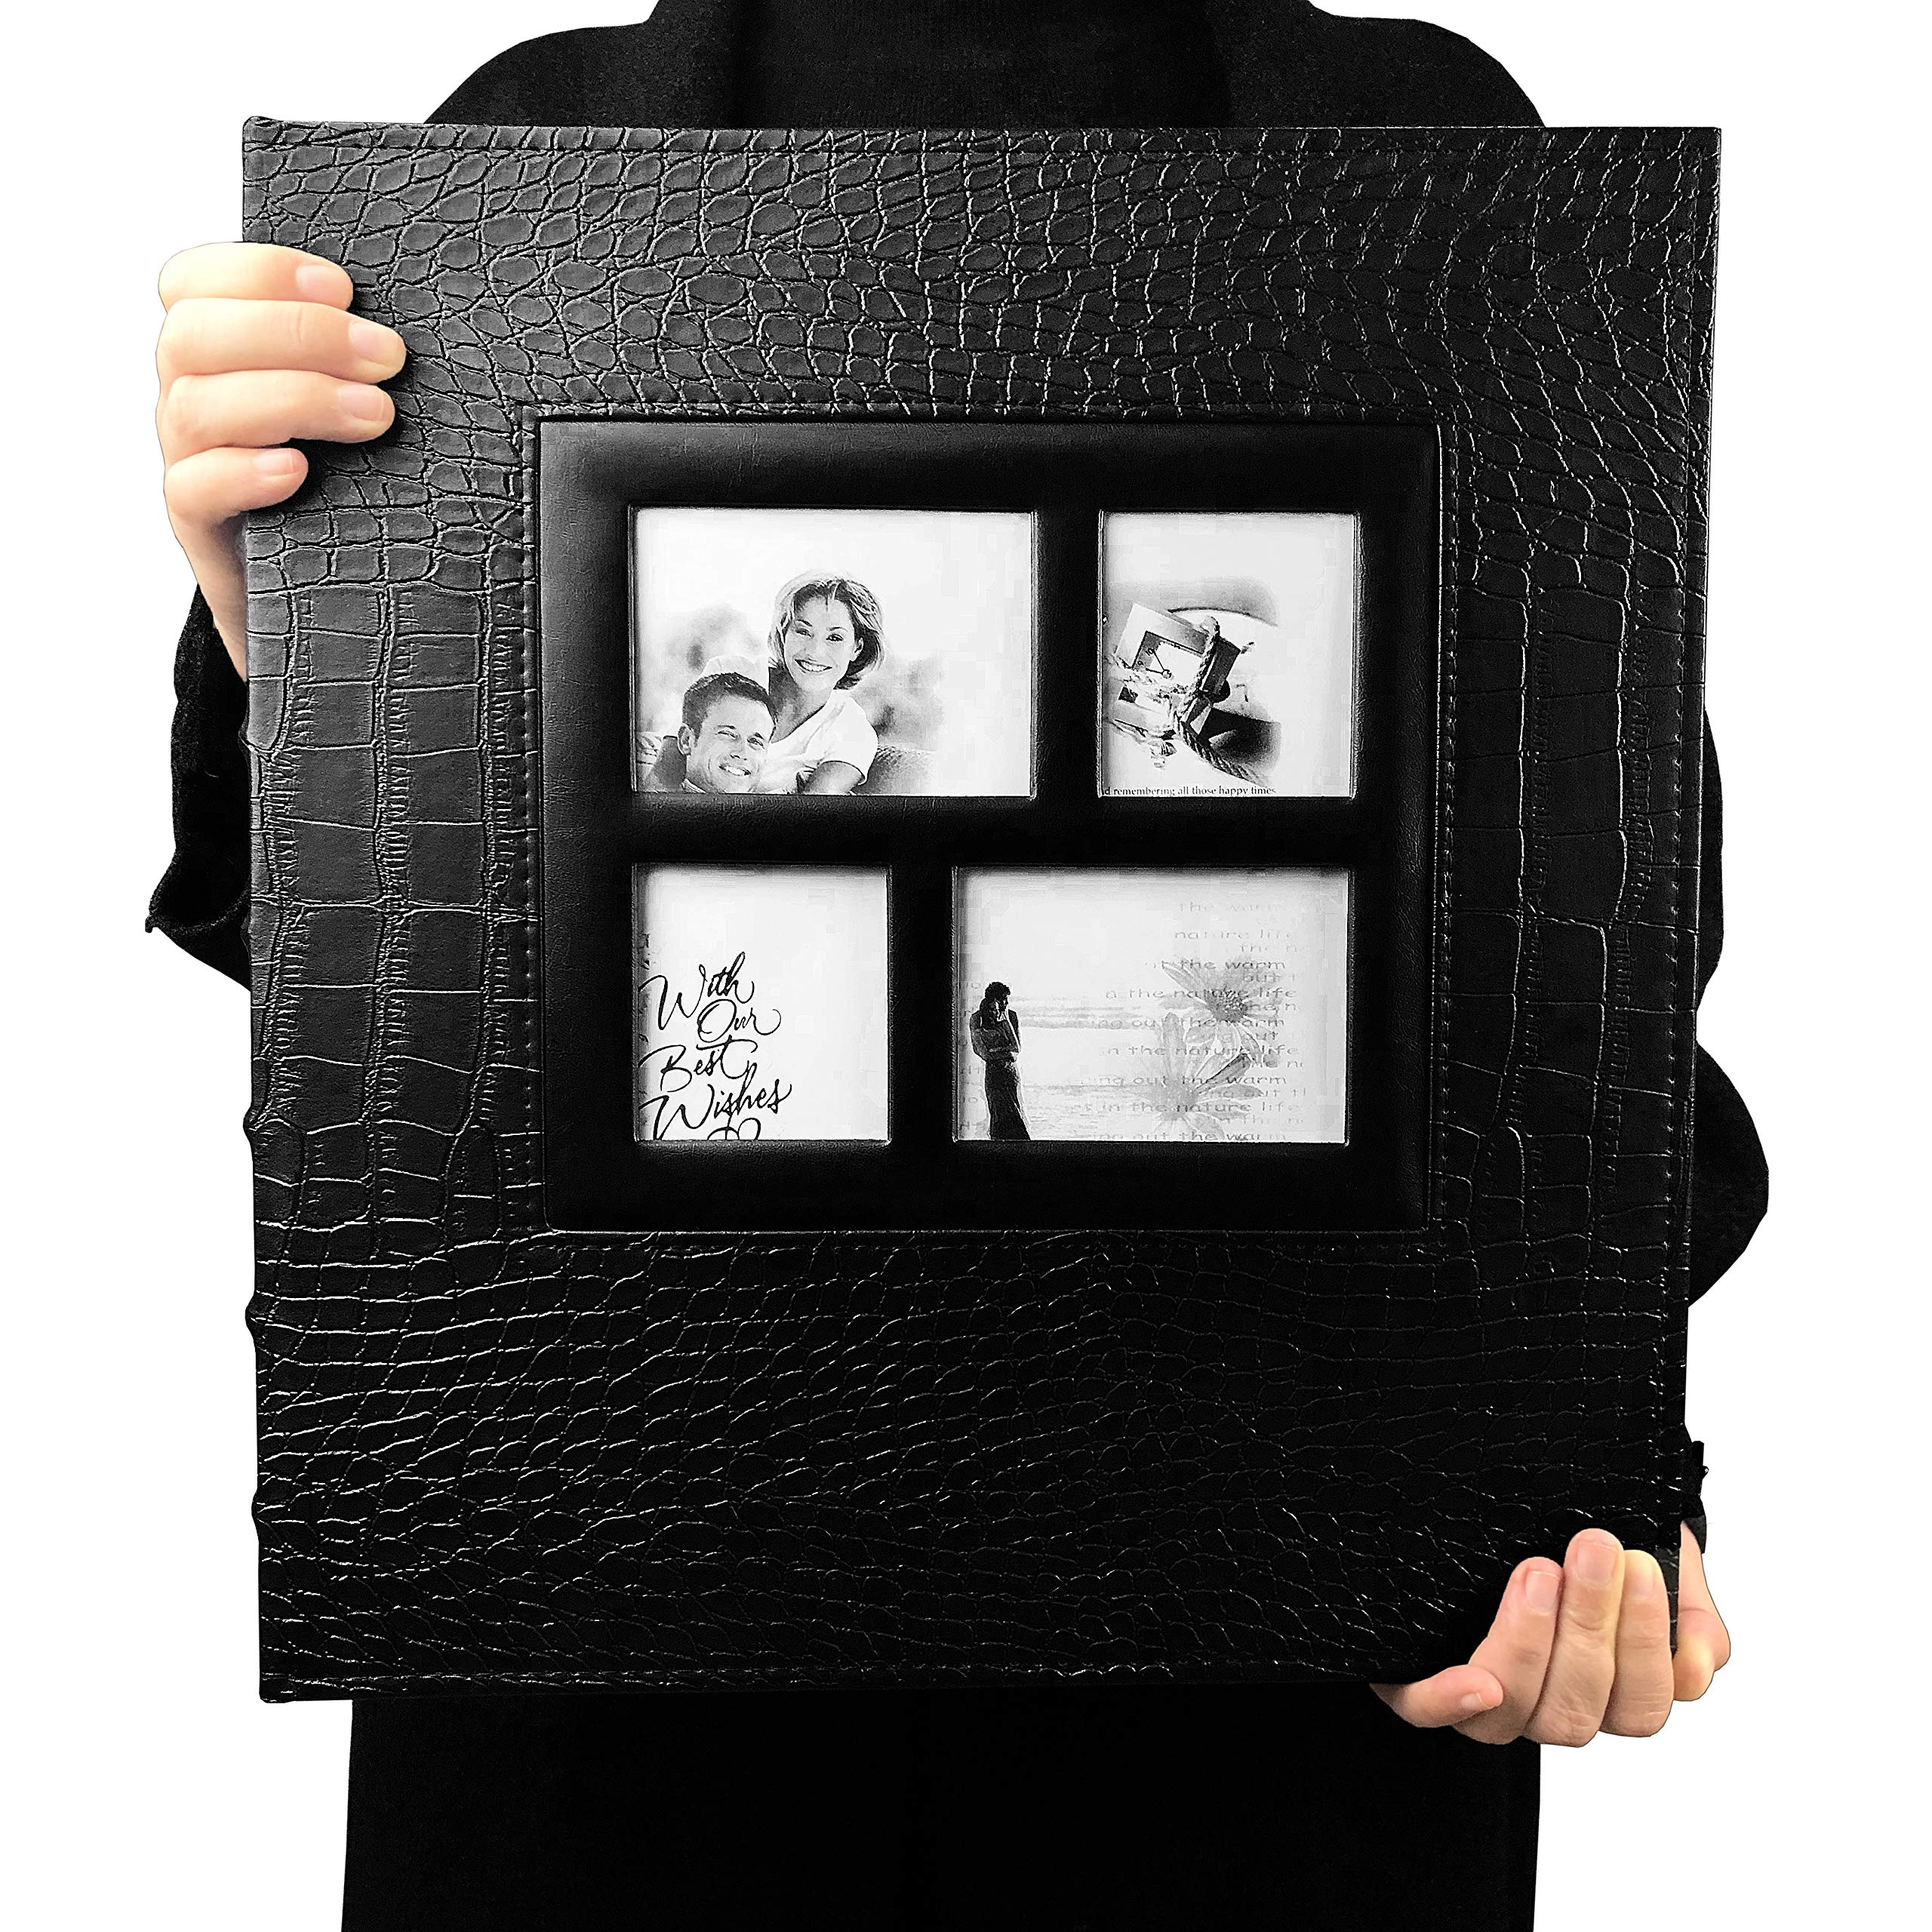 RECUTMS Photo Album 600 Pockets,Sewn Bonded Black Leather Book Pockets Hardcover Photo Frame 4x6 Photos Wedding Gift Valentines Day Present by RECUTMS